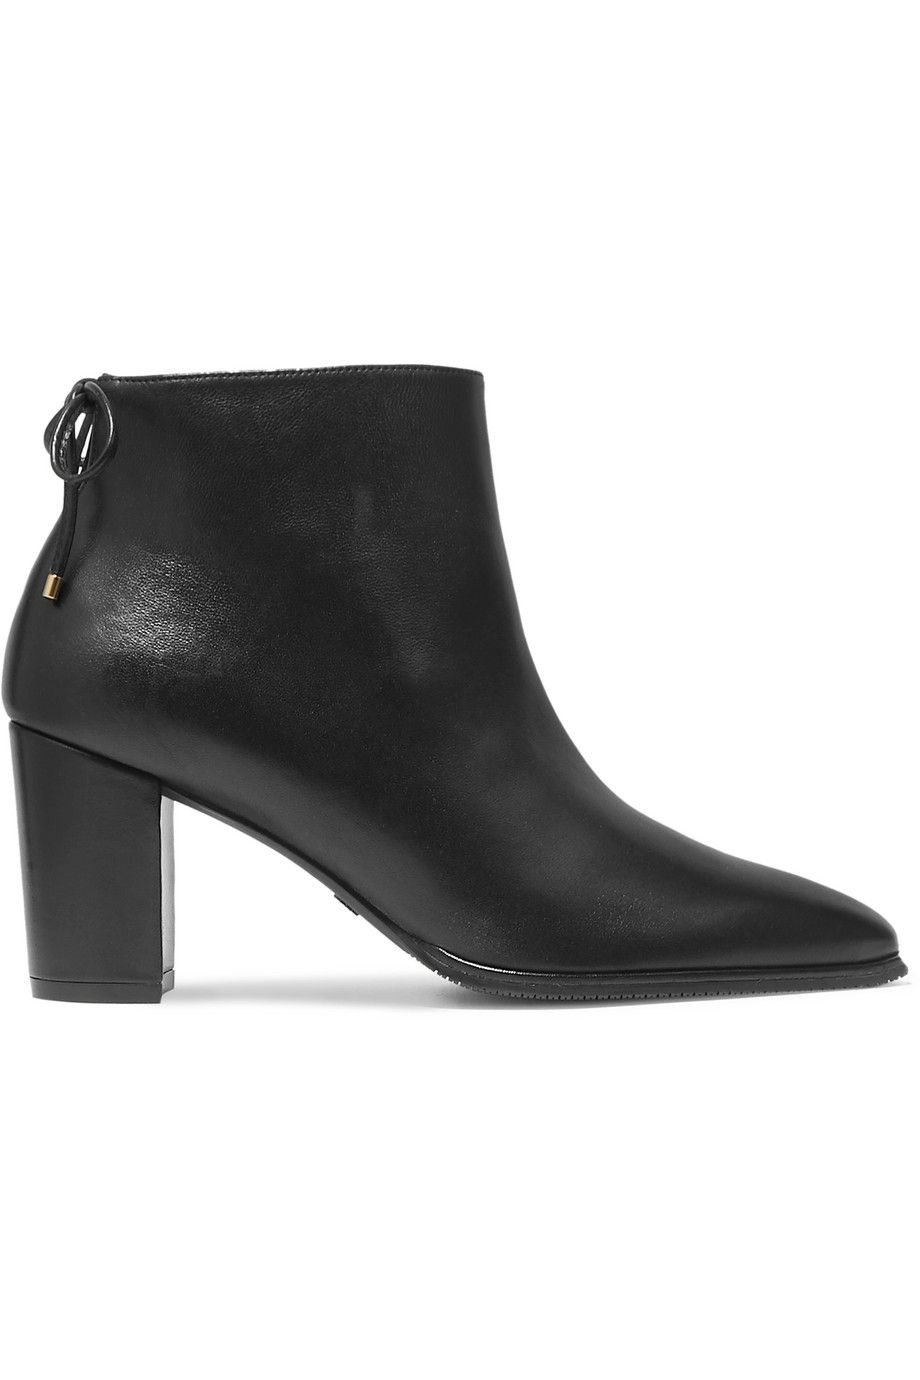 08ade9fa8d98b How to Wear Ankle Boots - Ankle Boot Outfit Ideas for Fall and Winter